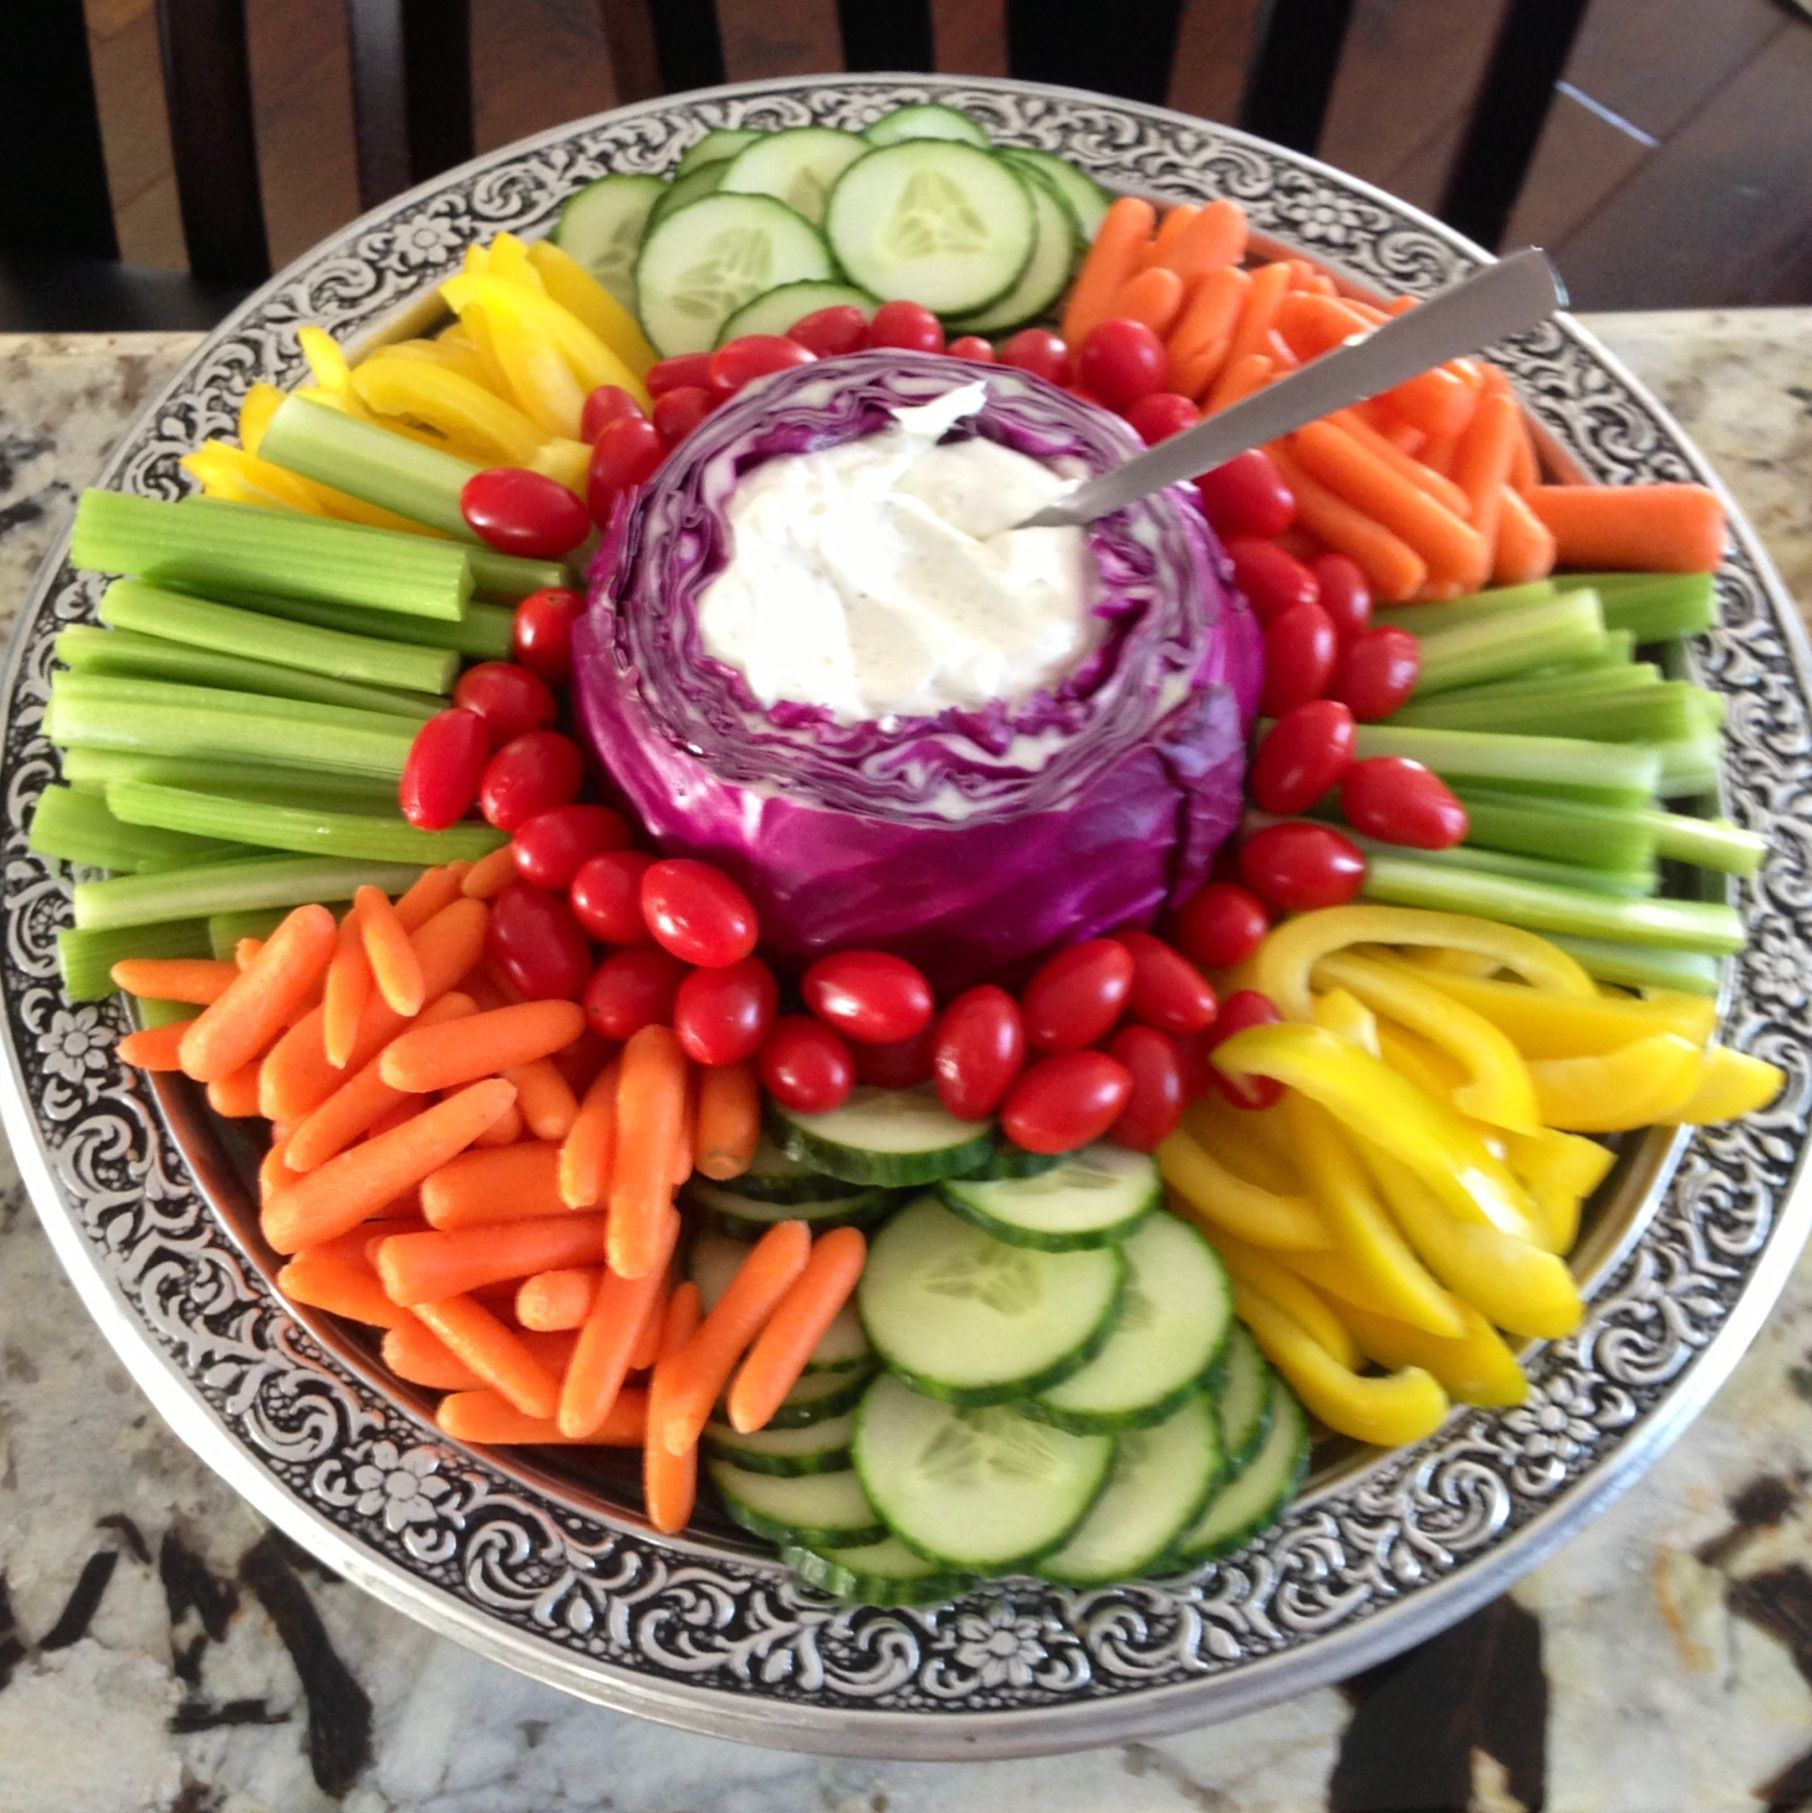 Obstplatte Kinder Fruit And Veggie Tray With Purple Cabbage For Dip Genius